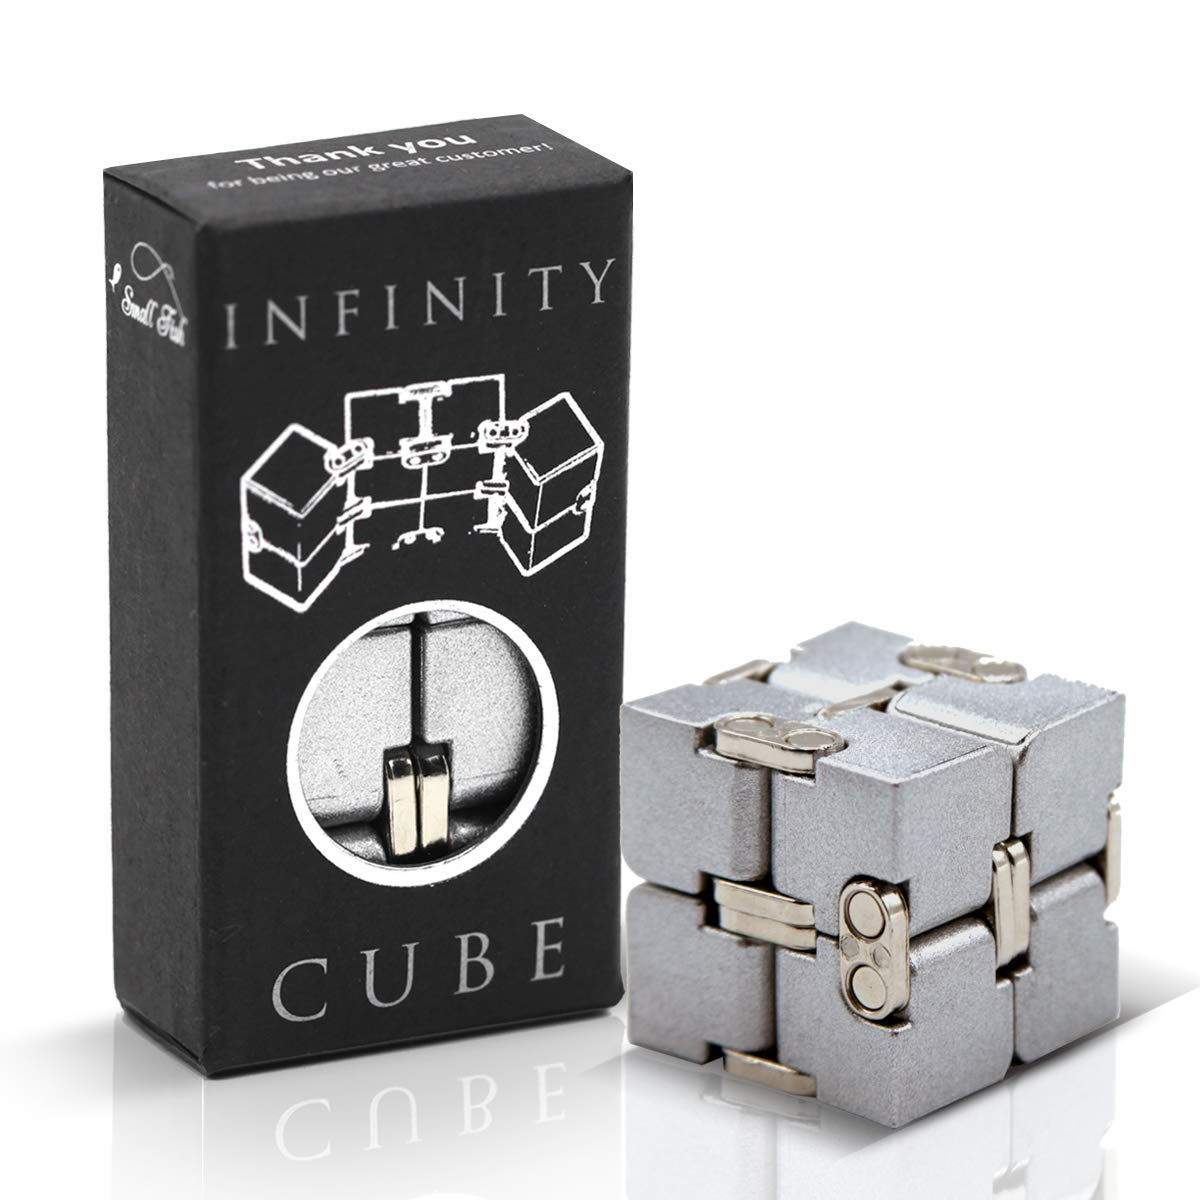 Fidget Cube Infinity Toy Gadget in Metal Aluminum for Kids, Teens, and Adults, Best Anxiety and Stress Relief Sensory Fidgeting Game, Ideal and Cool Gift Puzzle for Boys and Girls by SMALL FISH by SMALL FISH